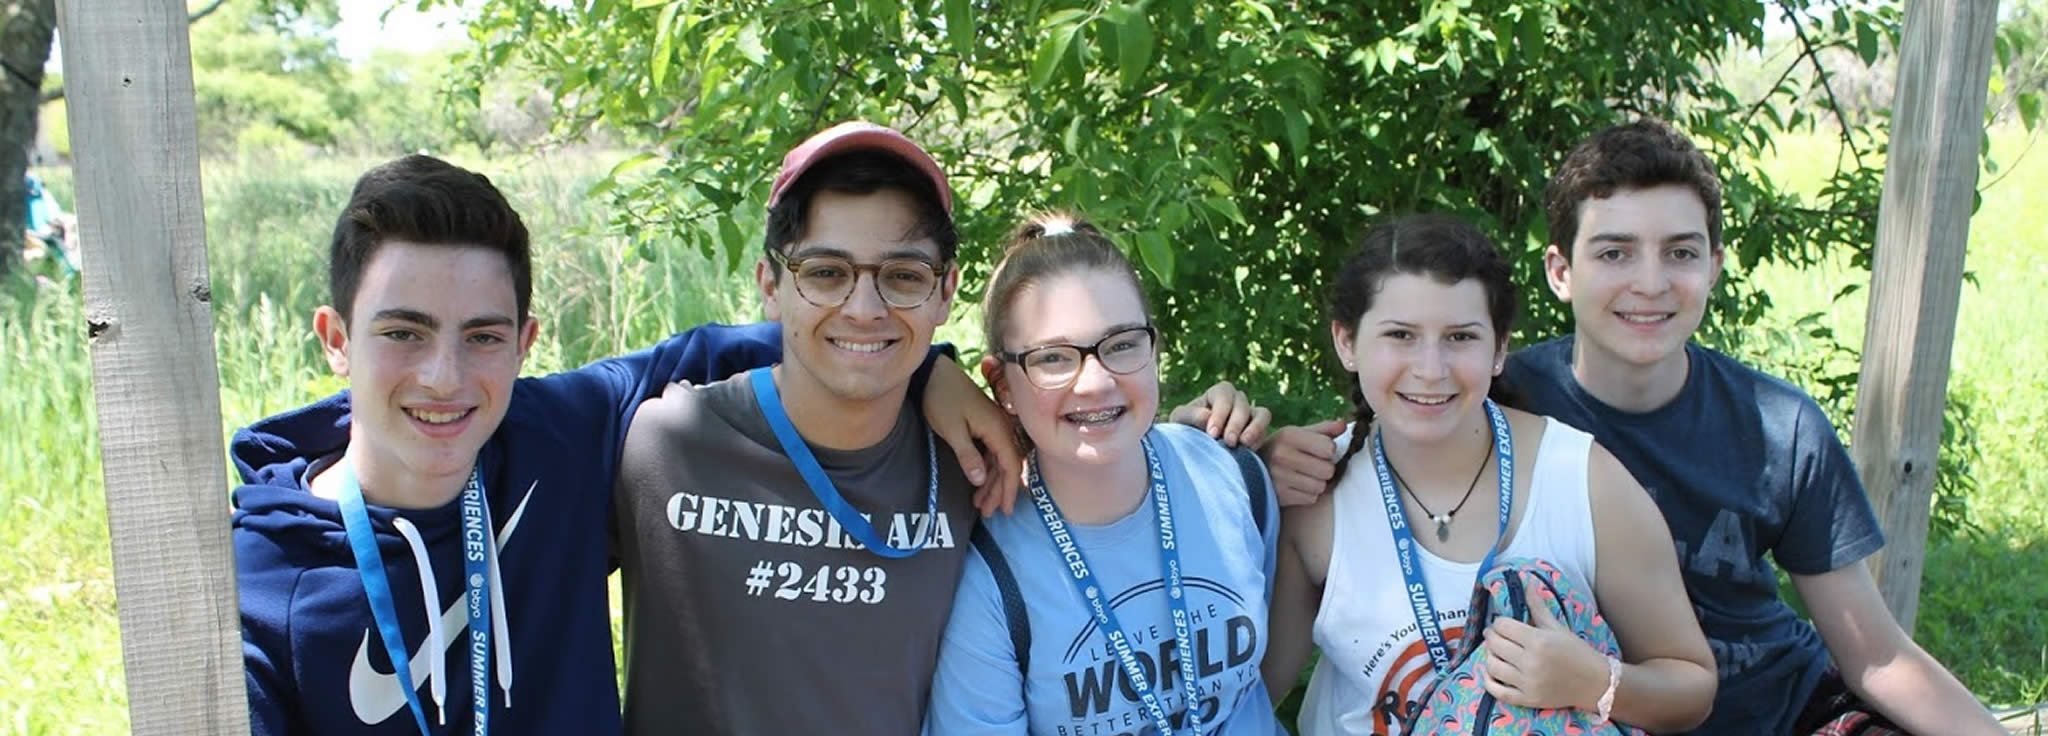 Summer Program - Jewish Culture | BBYO: CLTC at Beber Camp